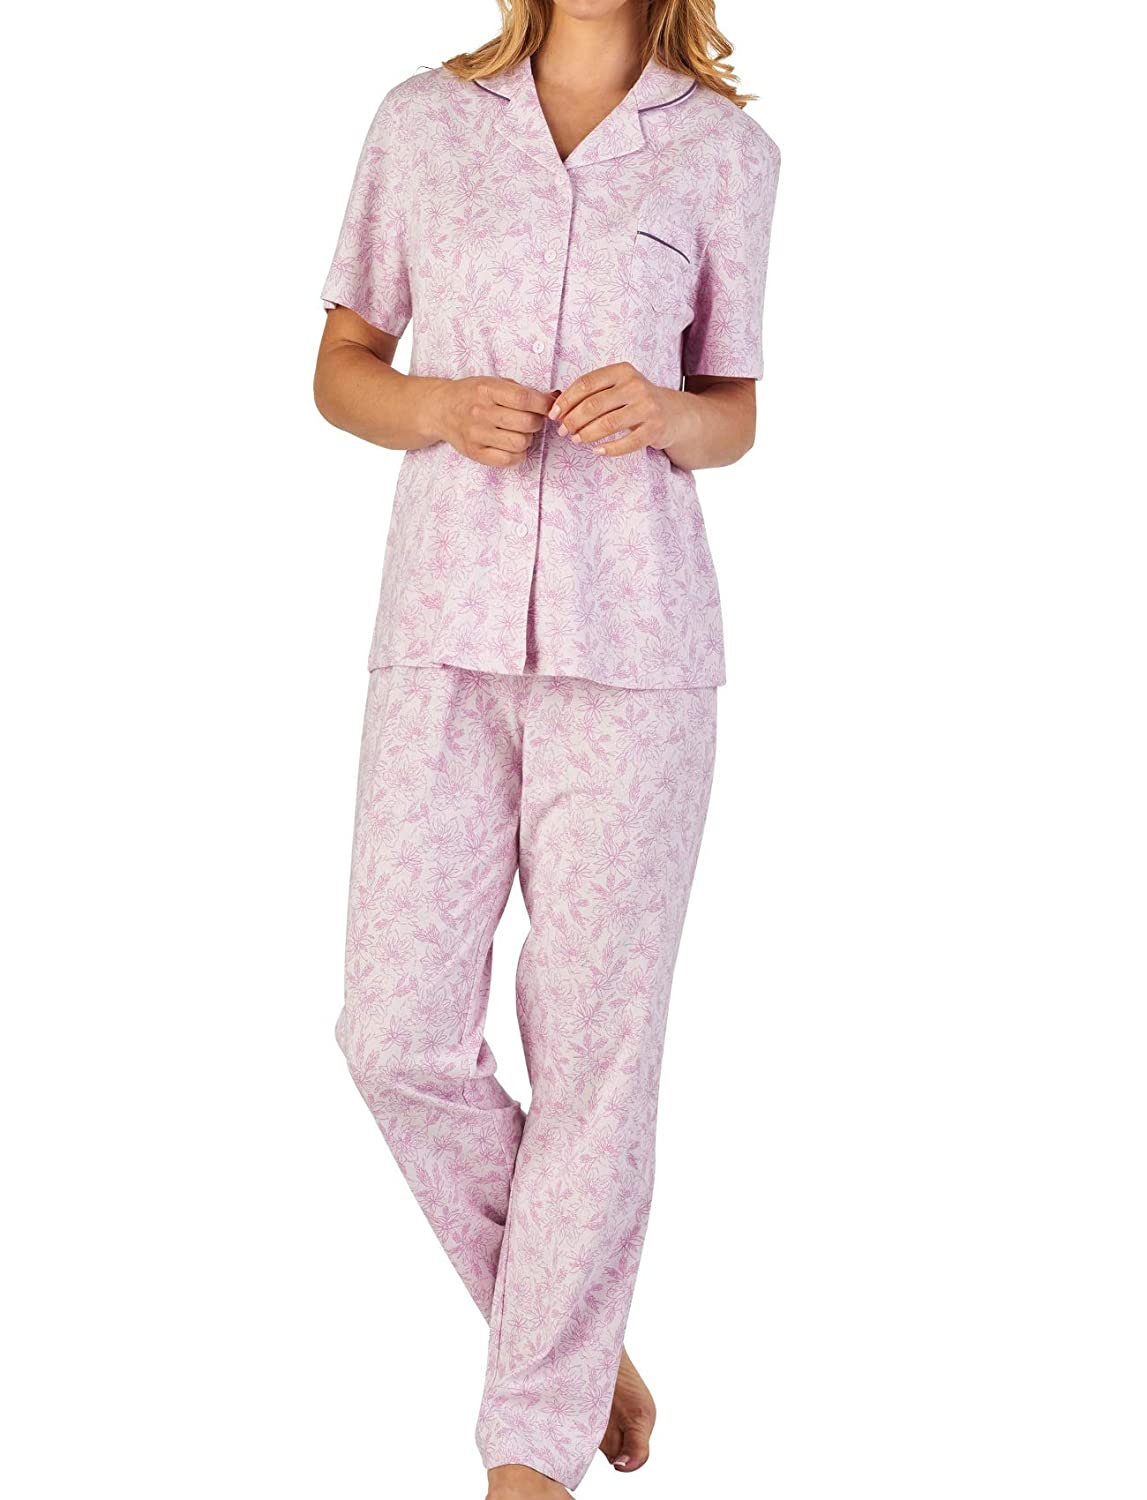 Slenderella Ladies Floral Meadow Pyjamas Jersey Cotton Button Up Top   PJ  Bottoms (3 Colours)  Amazon.co.uk  Clothing 6babf6f2b